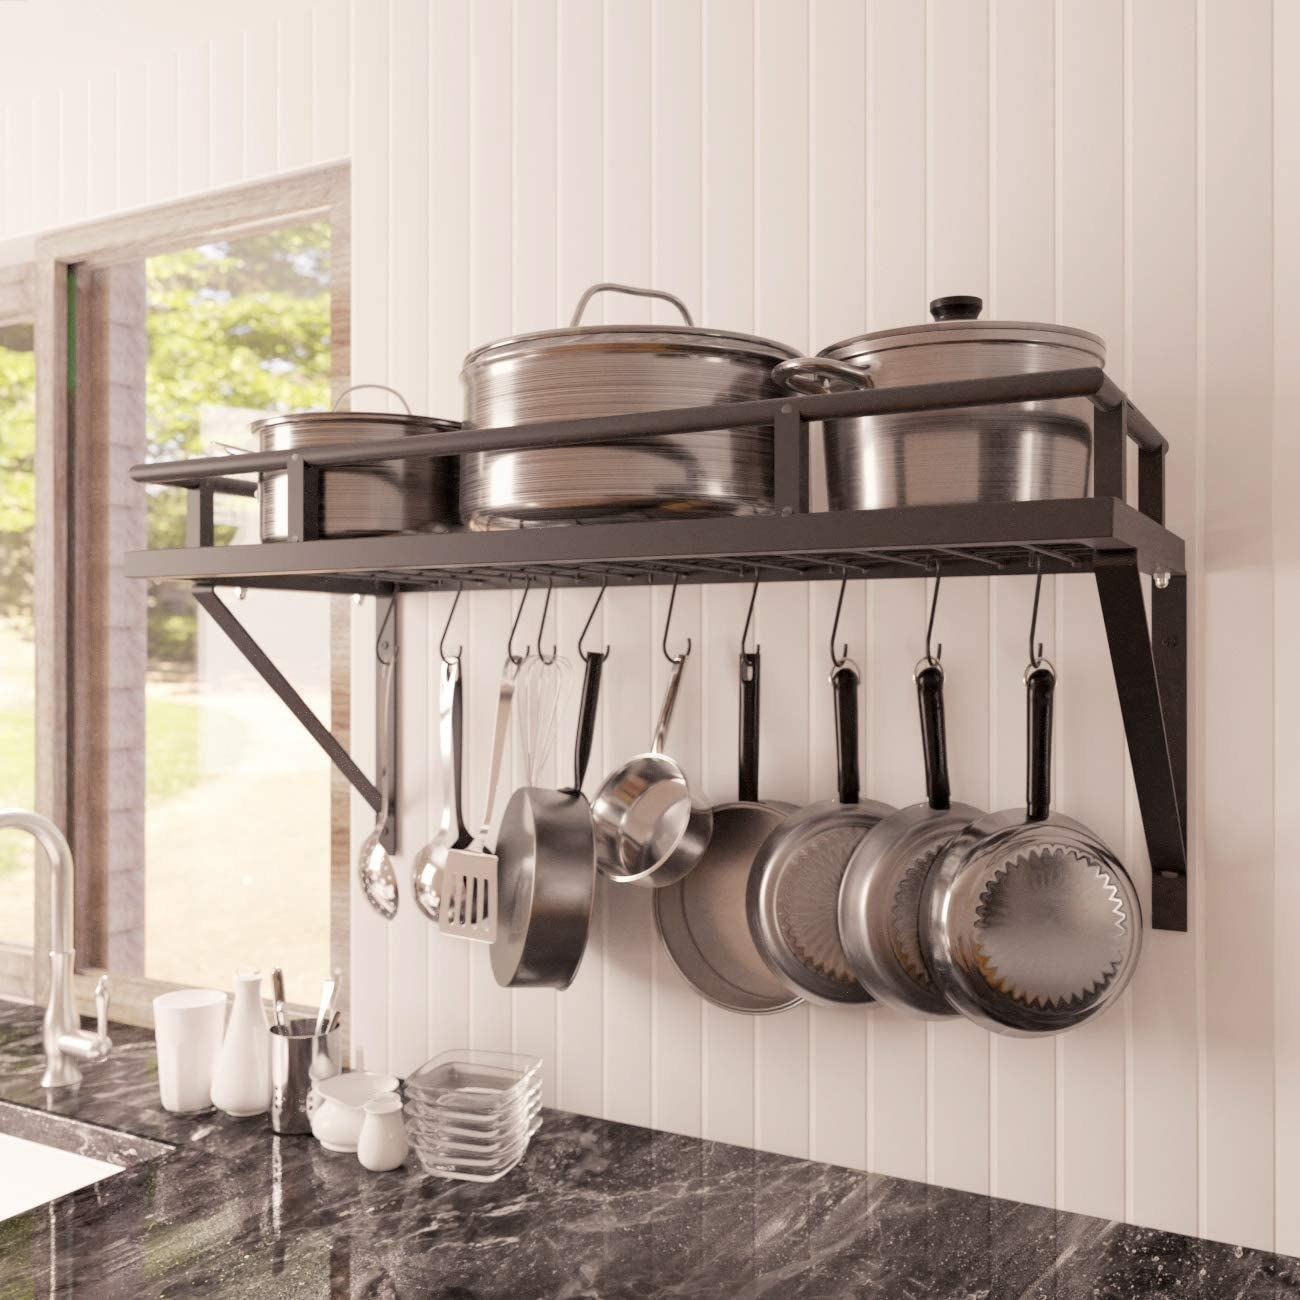 The pots and pans rack over a counter